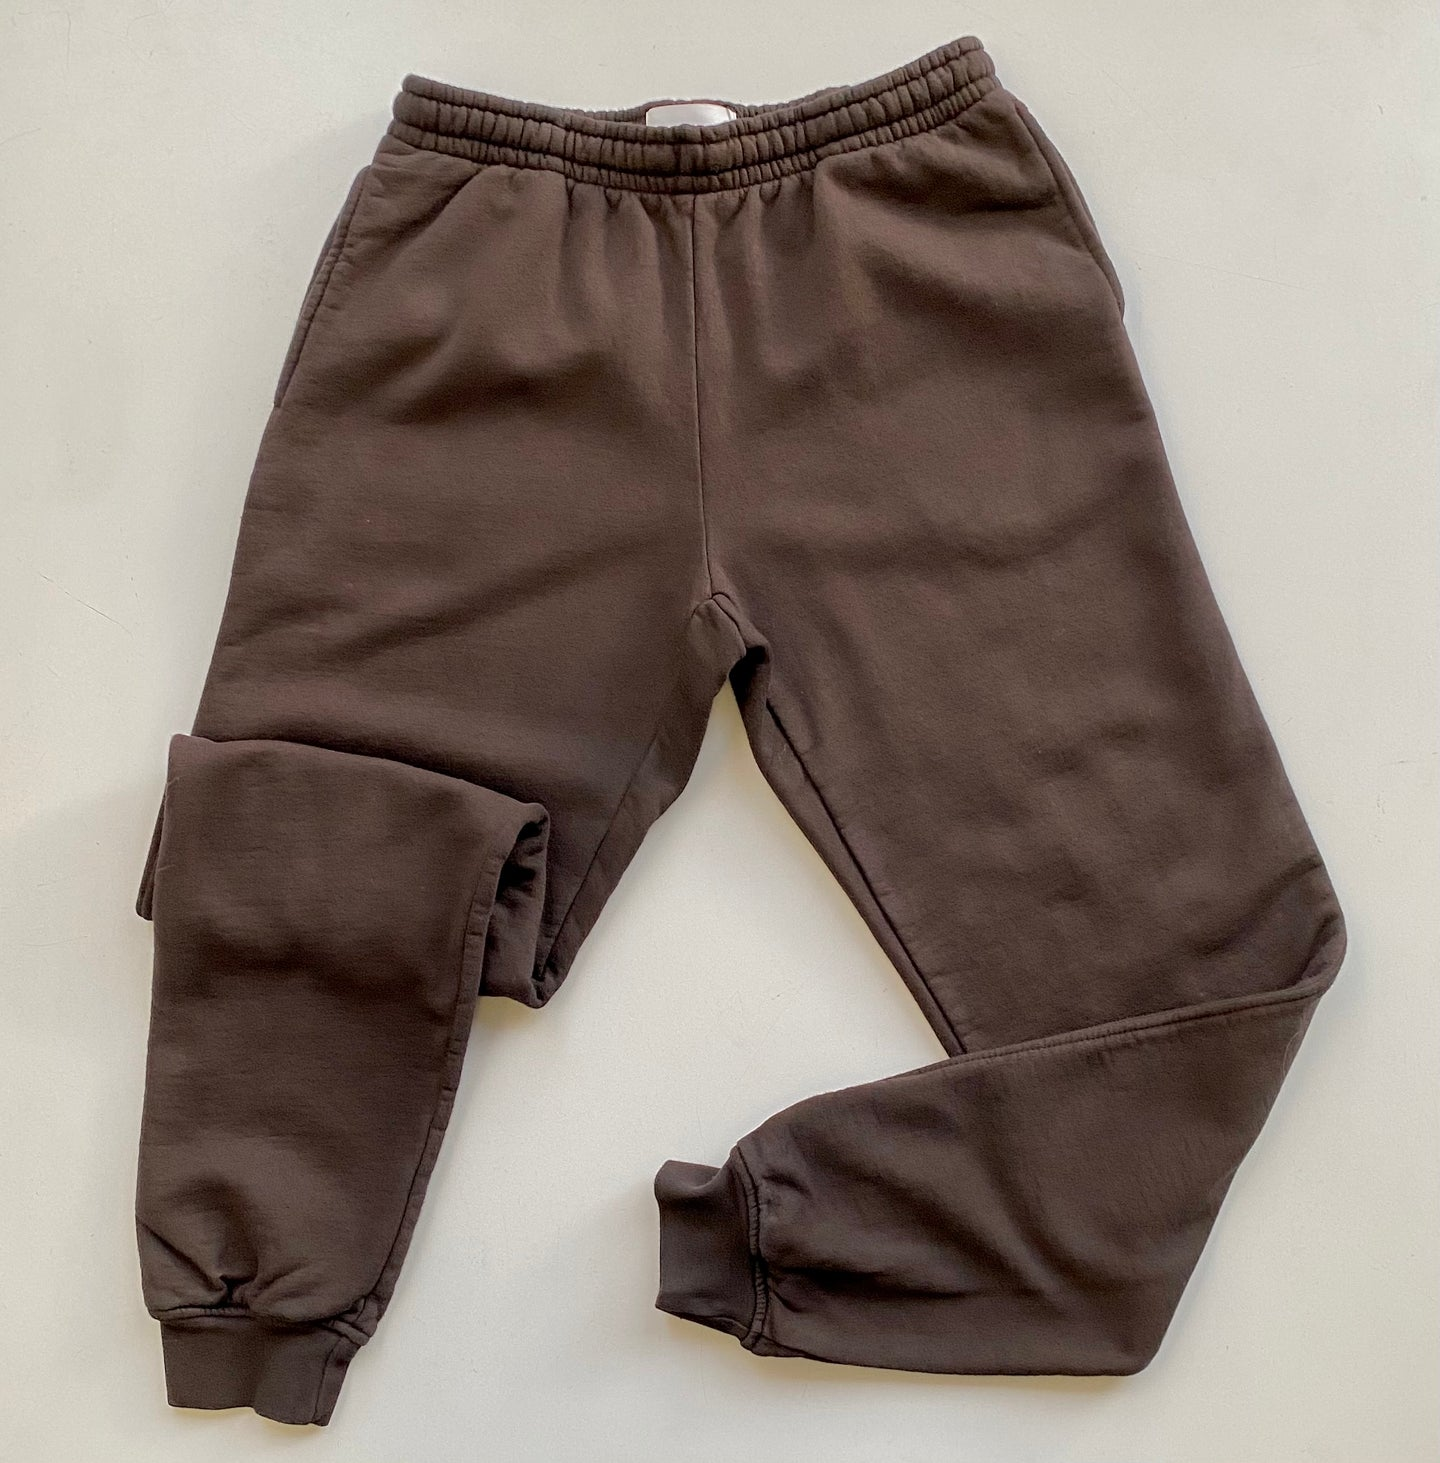 OkayOK Organic Cotton Unisex Jogger Sweats - Raisin